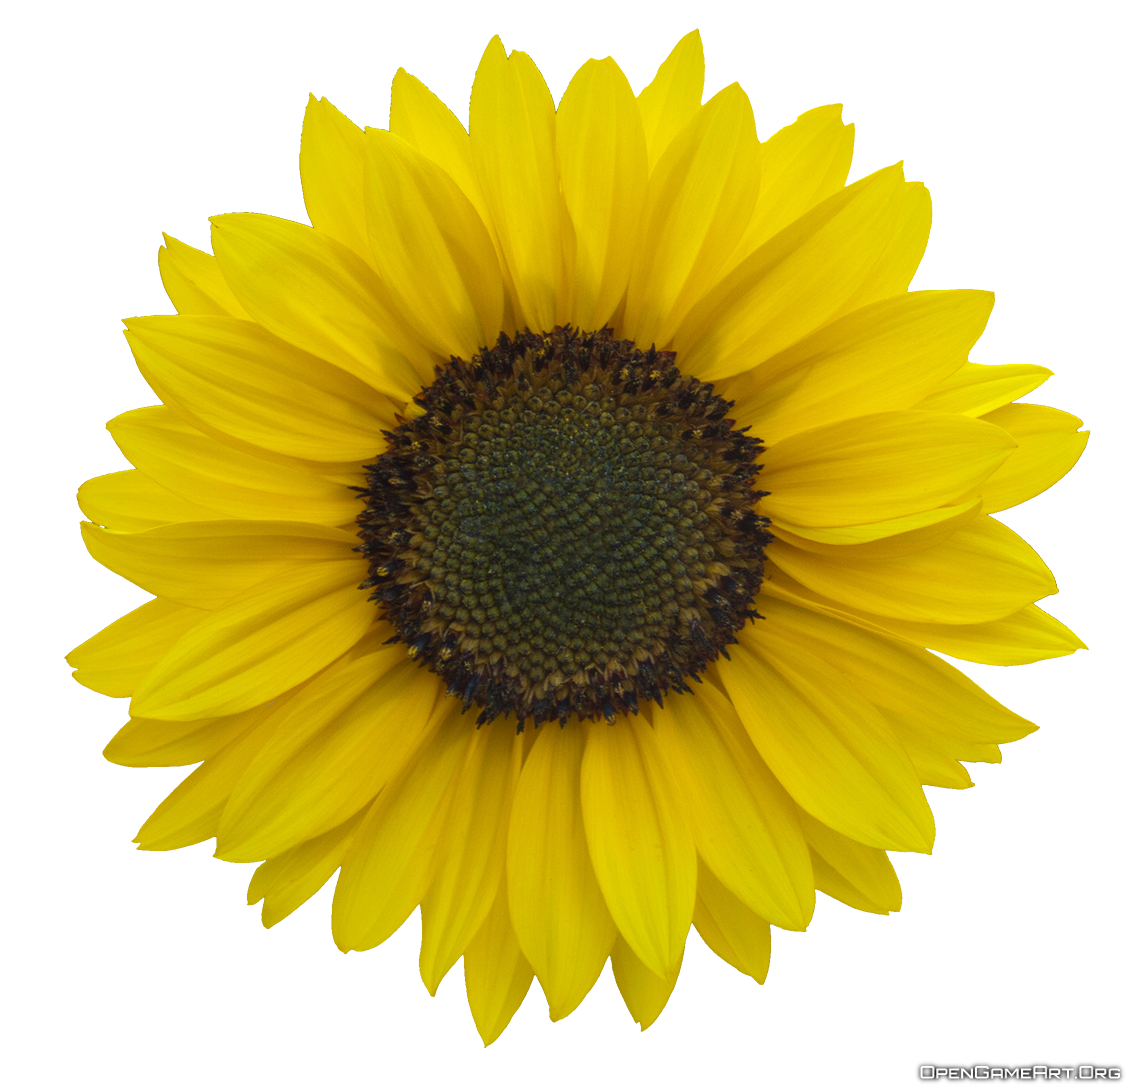 Download Sunflower Images Free